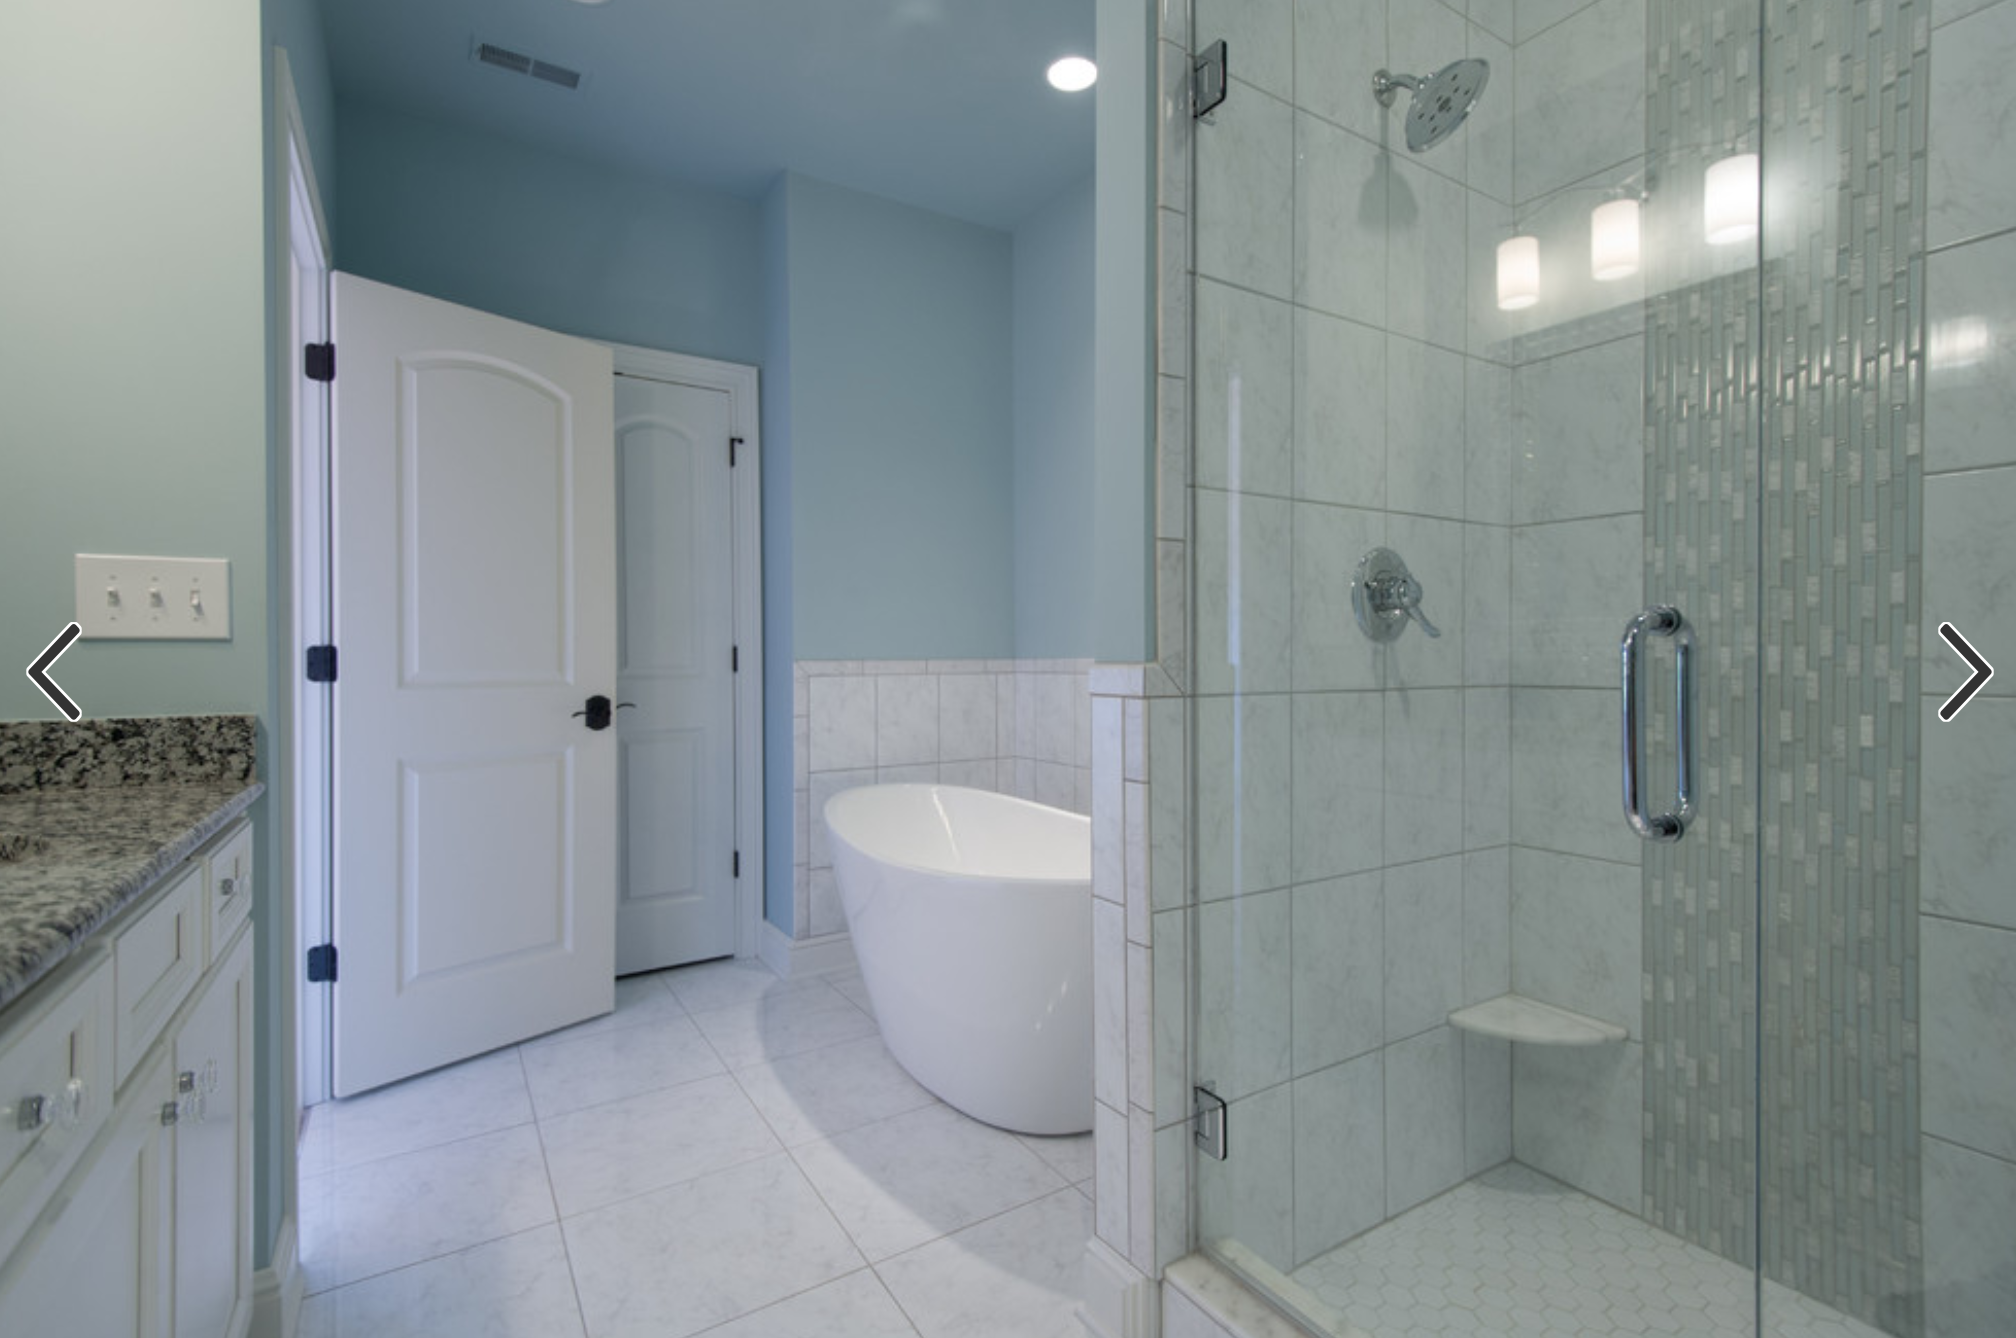 Houzz Same Large Tile On Shower Wall And Bathroom Floor Tile Strips Placed Vertically On Shower Feature Wall Hexi Houzz Bathroom Bathroom Flooring Bathroom